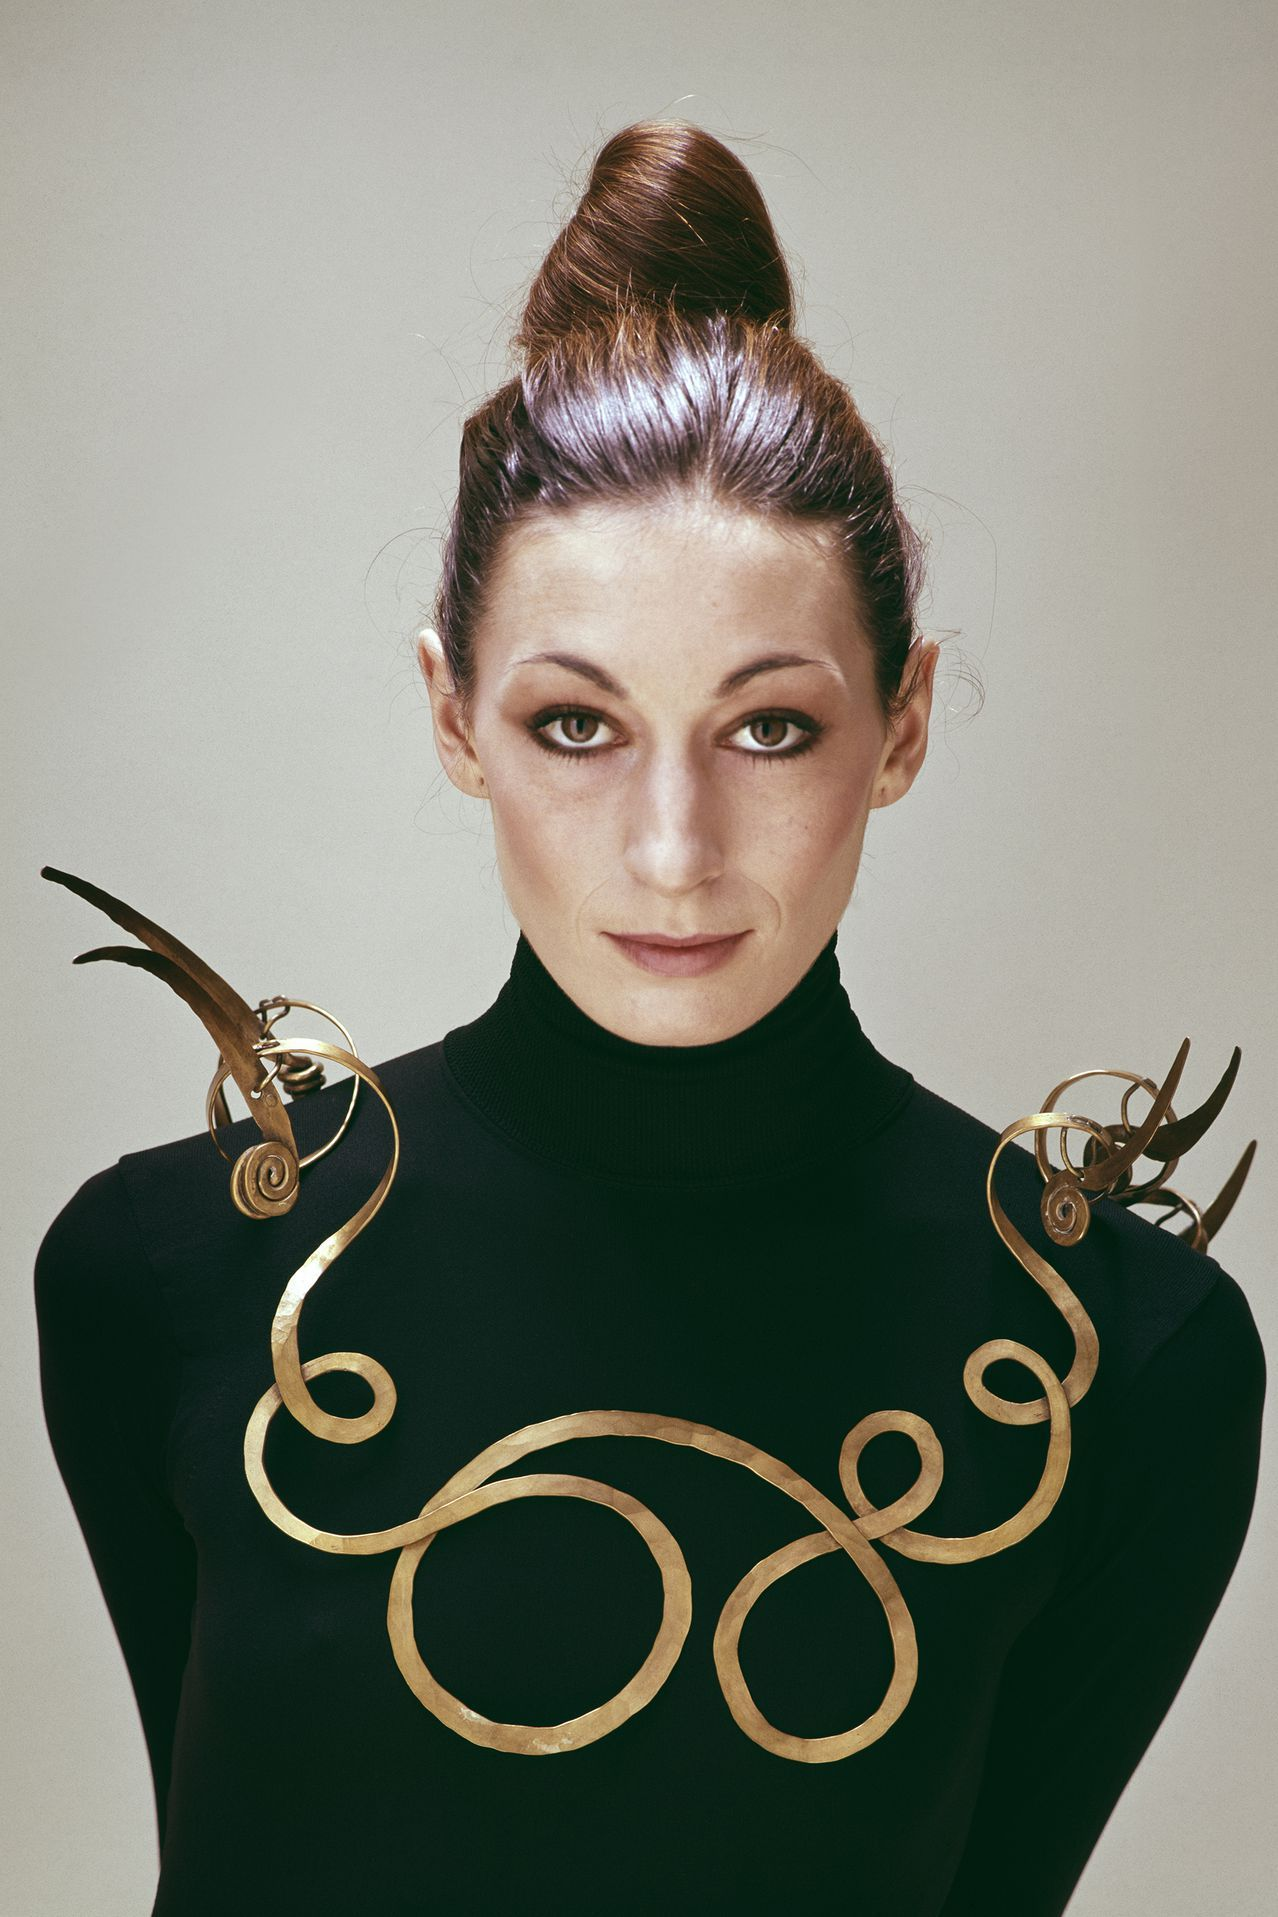 Art as Jewellery: From Calder to Kapoor by Louisa Guinness